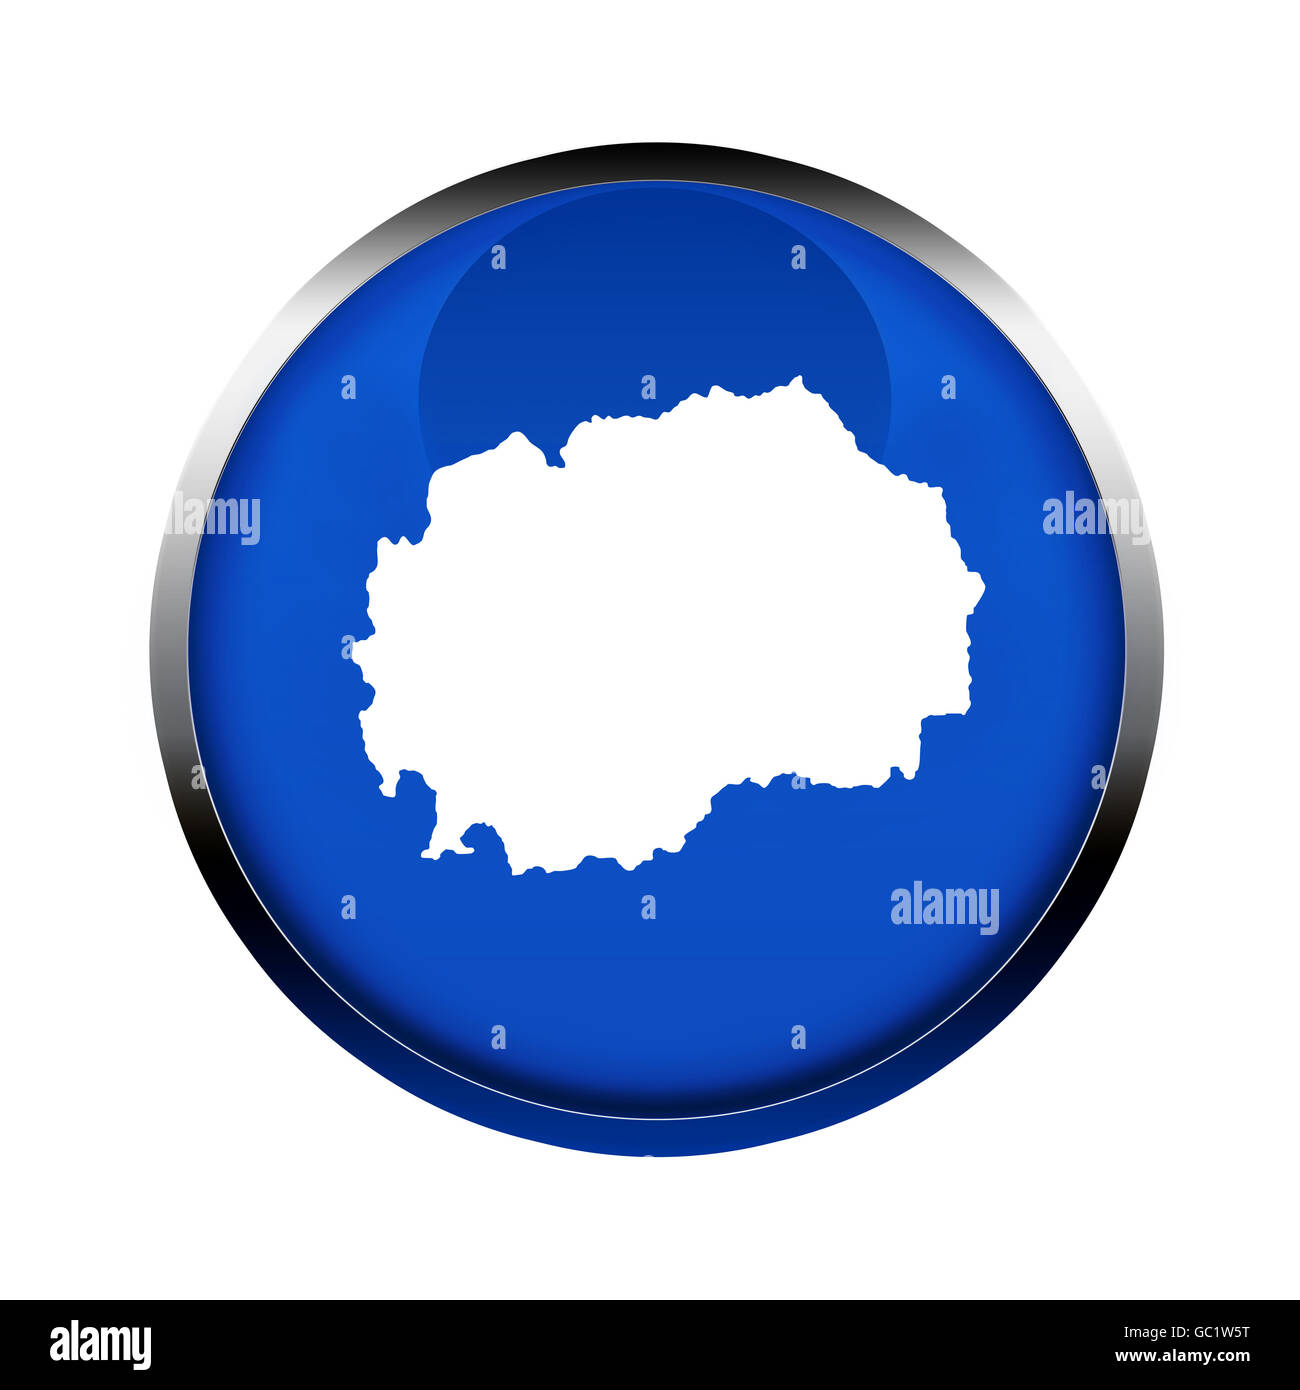 Macedonia map button in the colors of the European Union. - Stock Image